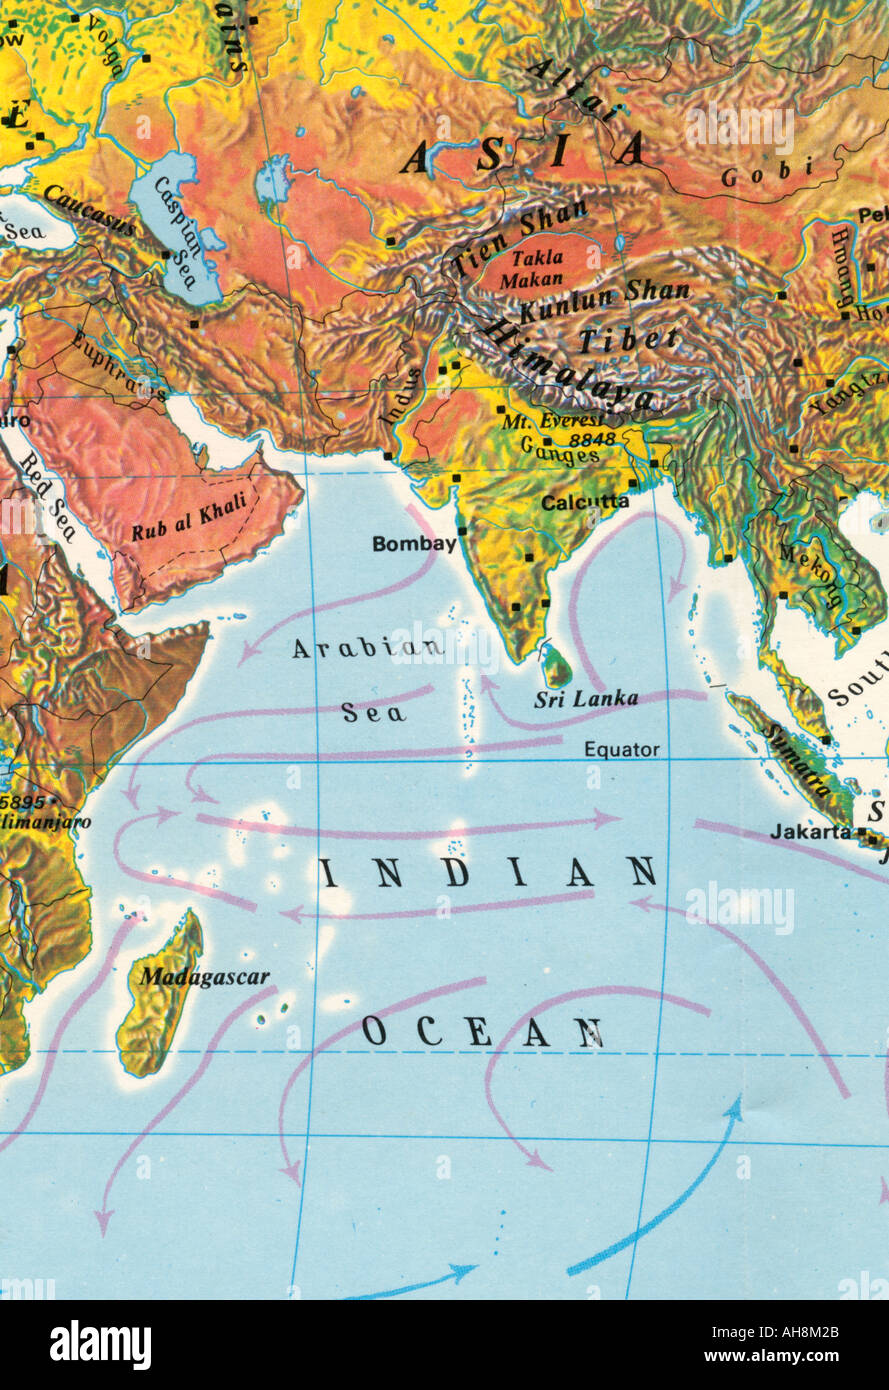 Map of india asia and indian ocean arabian sea sri lanka equator map of india asia and indian ocean arabian sea sri lanka equator madagascar tibet sciox Image collections